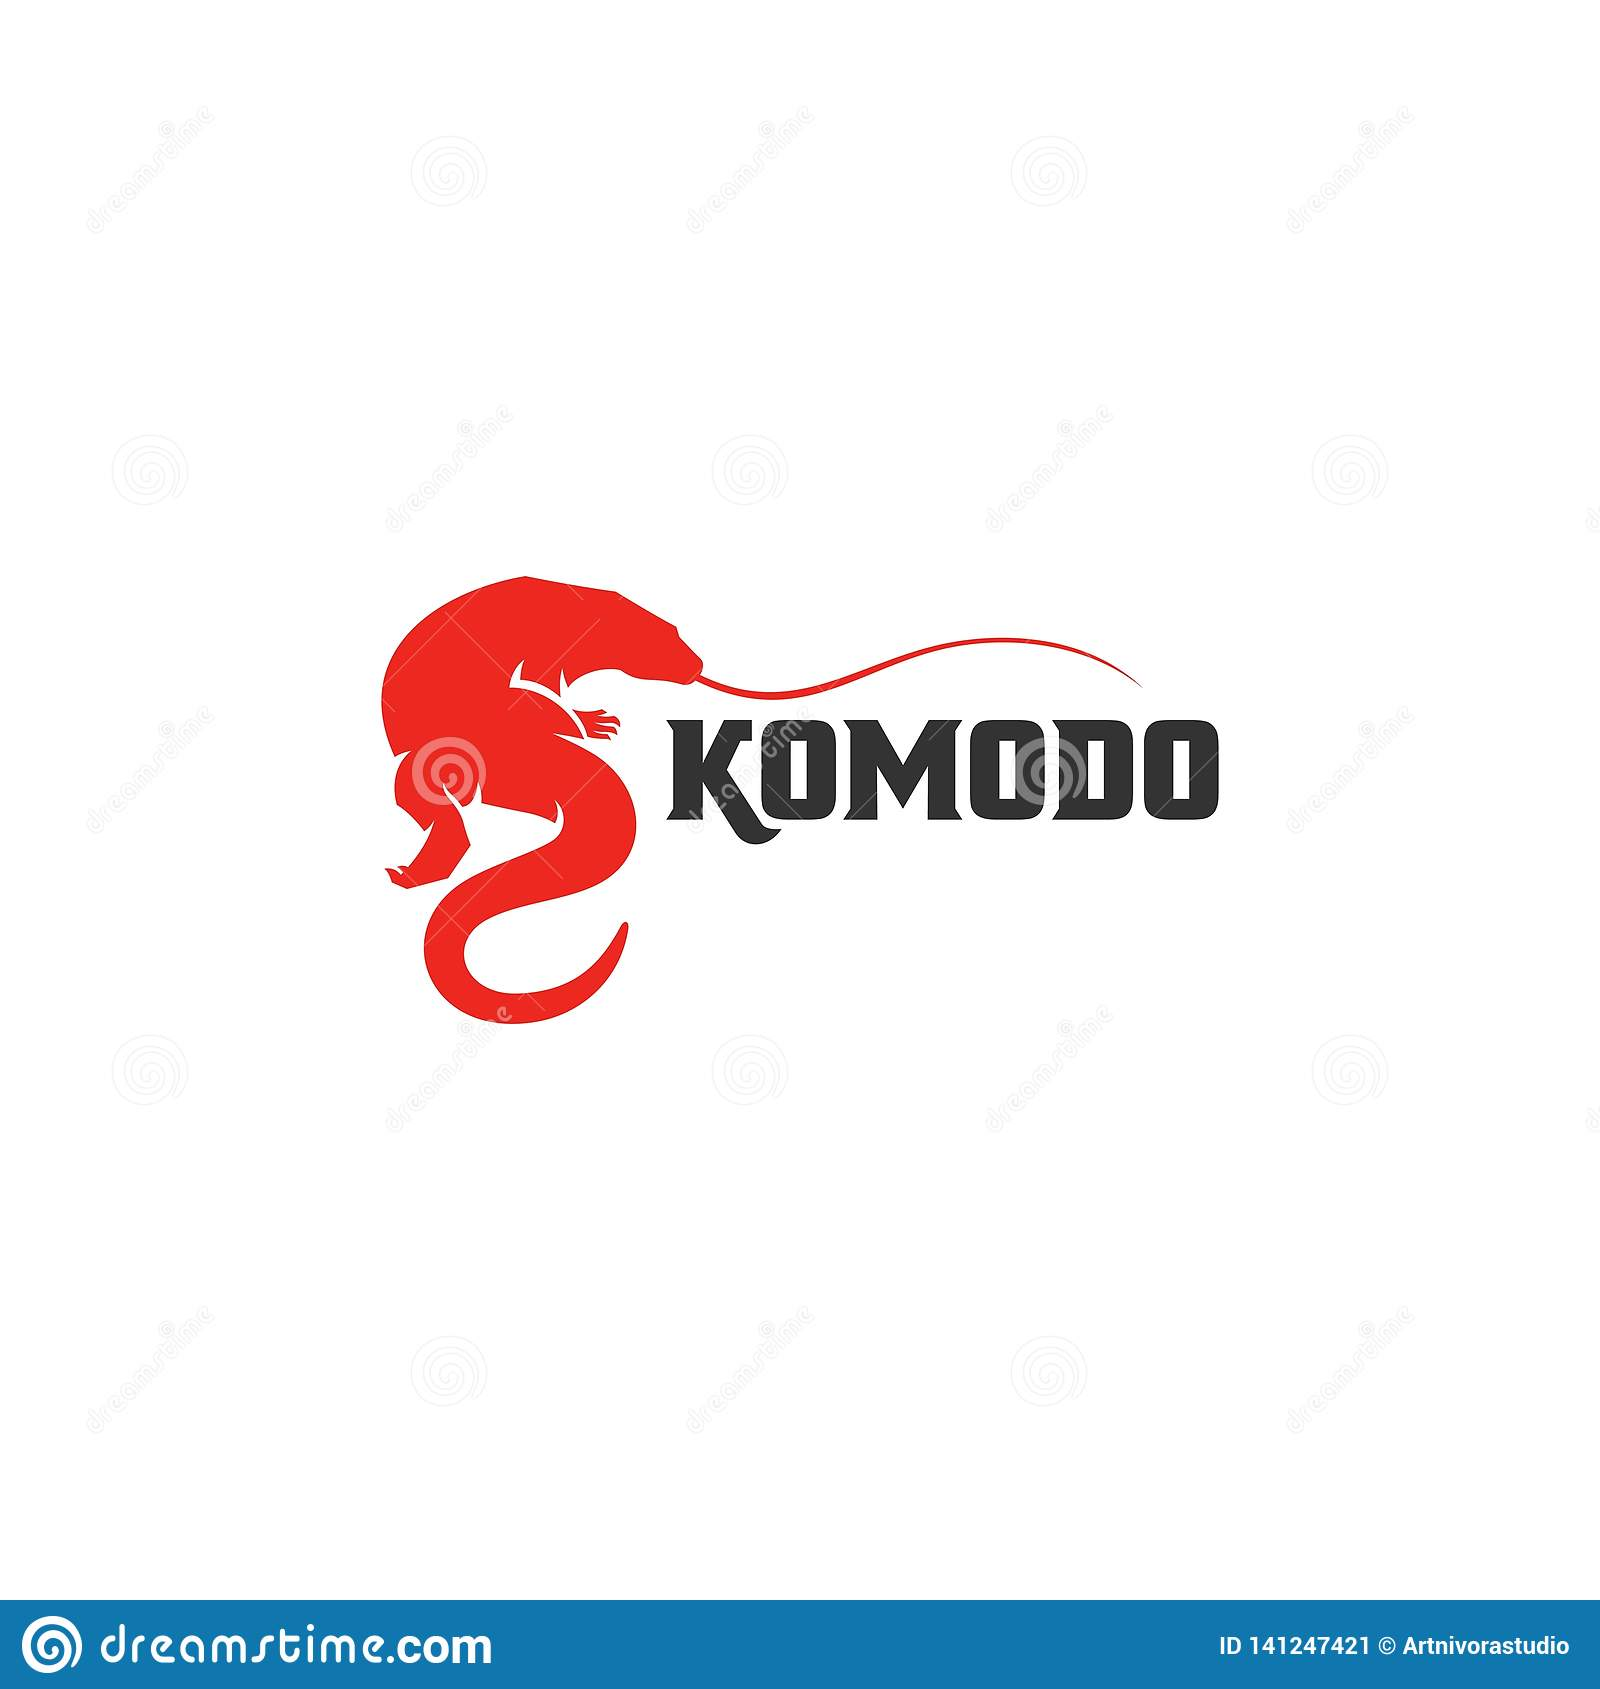 Abstract Commodore Concept illustration vector Design template